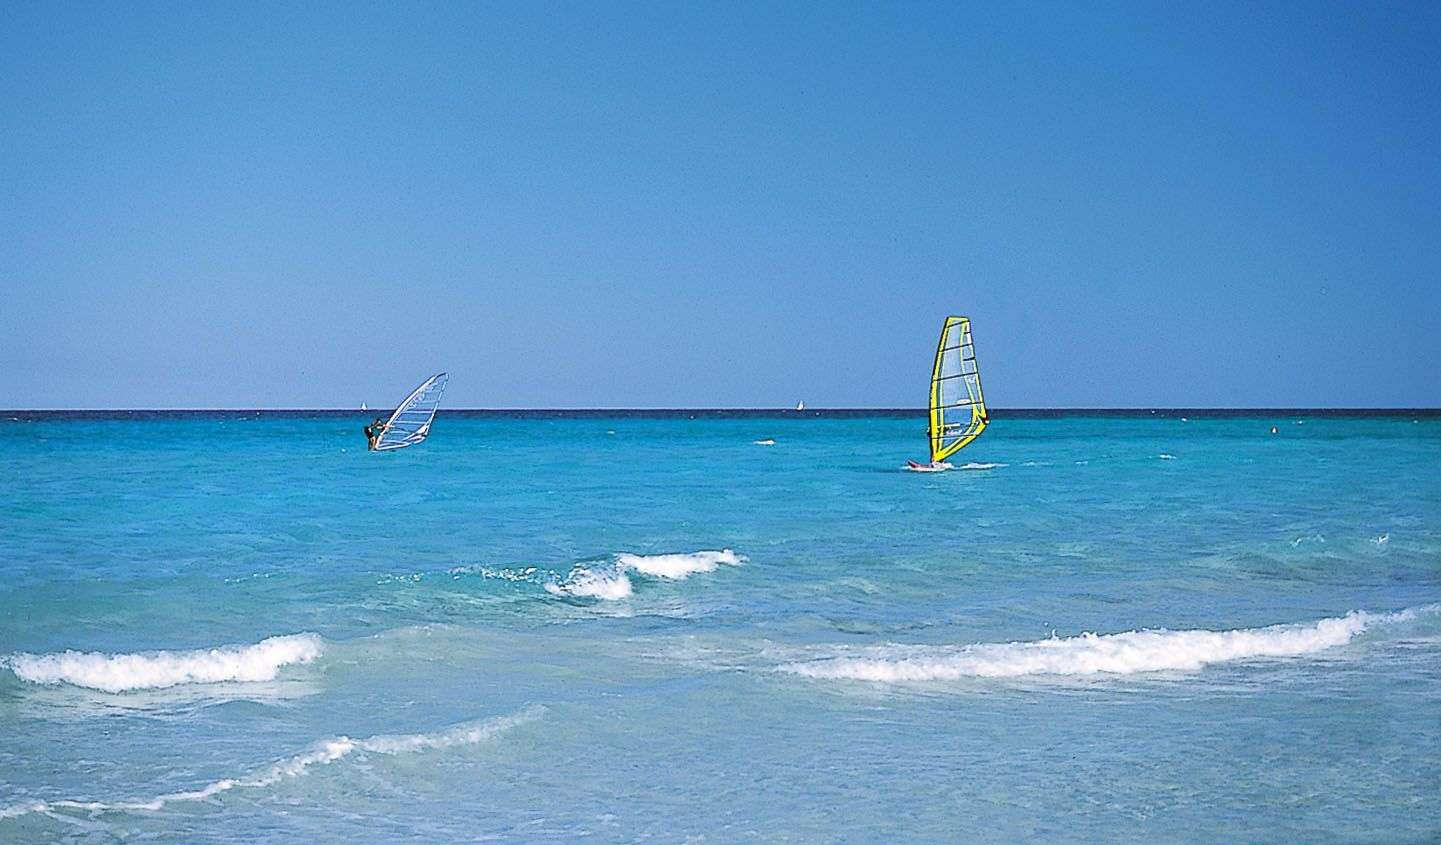 Et sandt paradis for windsurfere